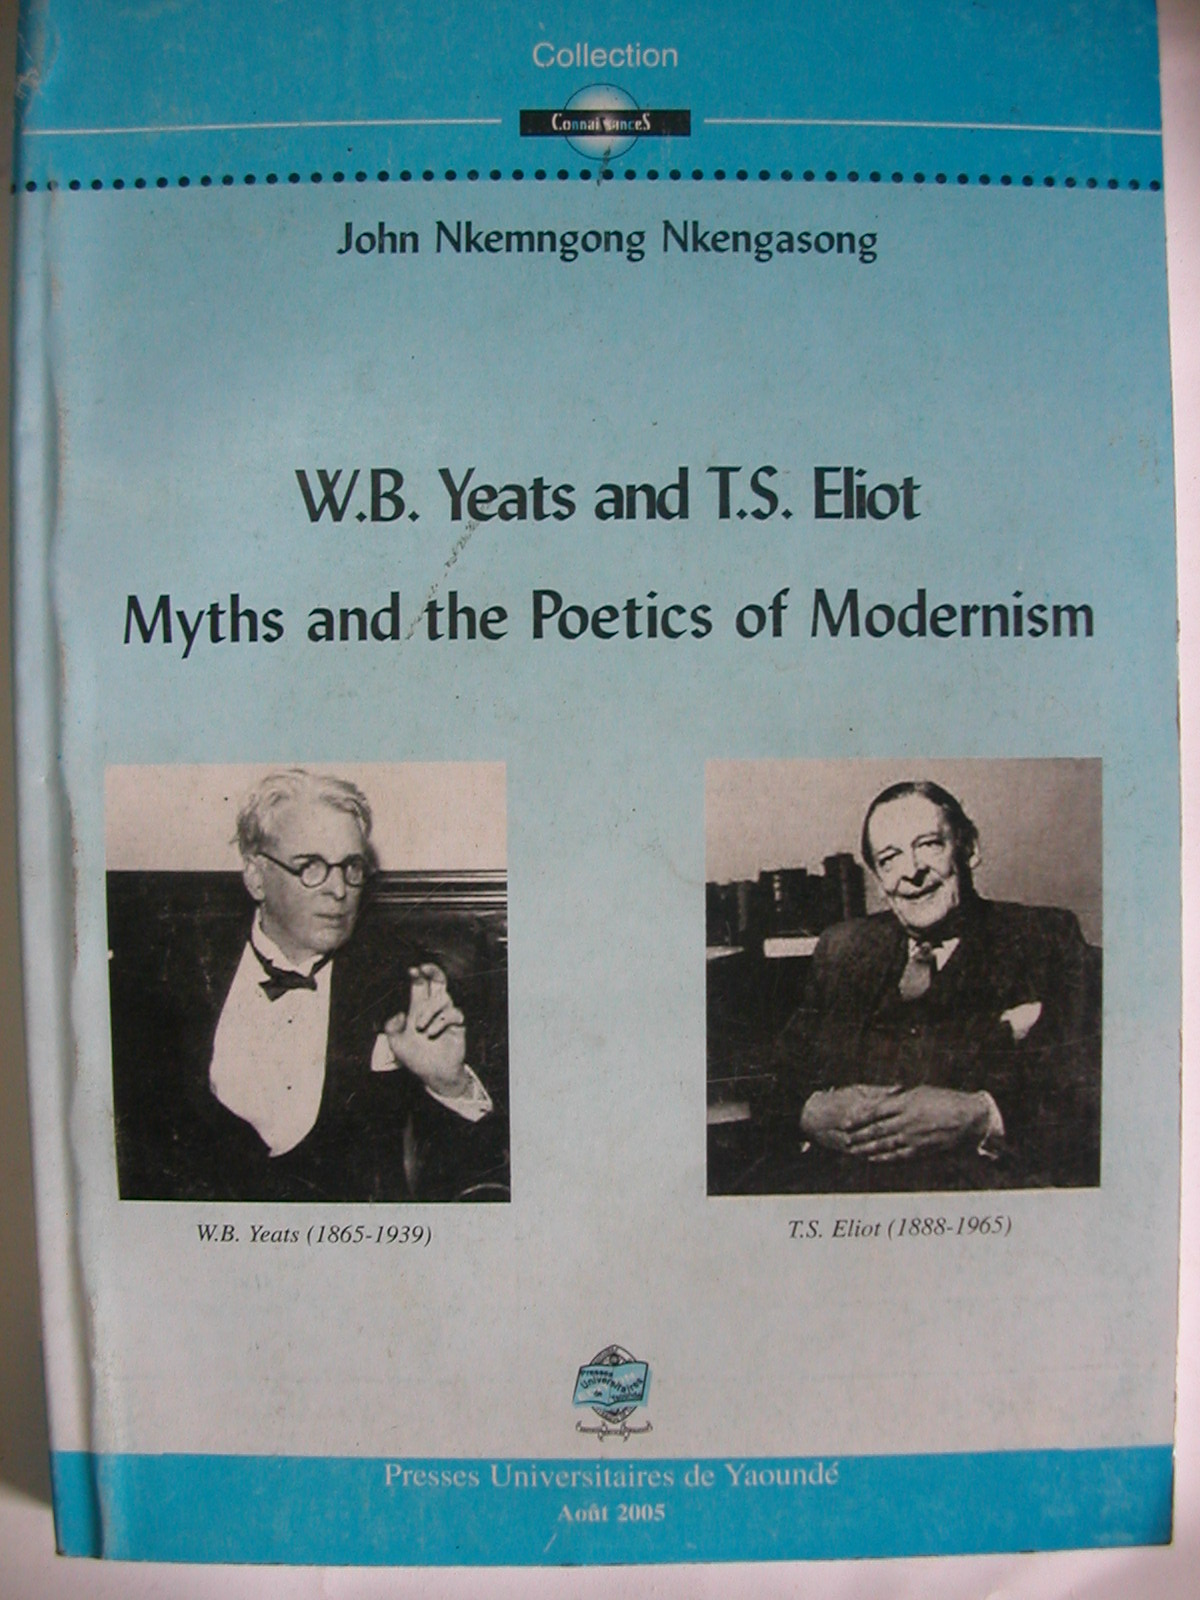 W.B. Yeats and T.S. Eliot, myths and the poetics of modernism (2005)1